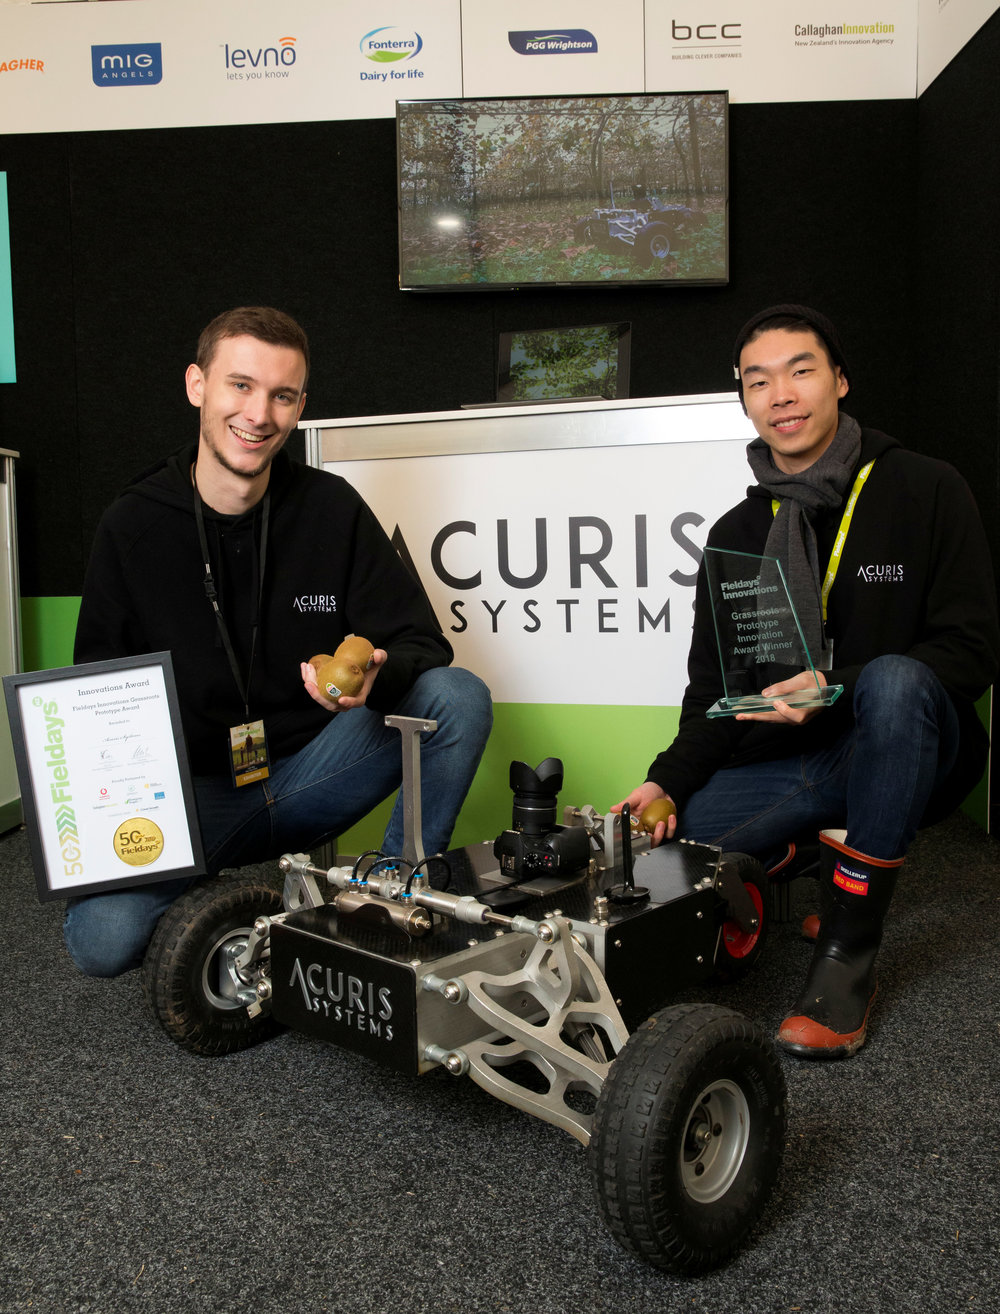 2018 Fieldays Grassroots Prototype Award winners Acuris Systems with their prototype robot that autonomously navigates kiwifruit orchards while capturing highly accurate fruit data. This data is then analysed to provide growers with quality information and insights to their orchards performance